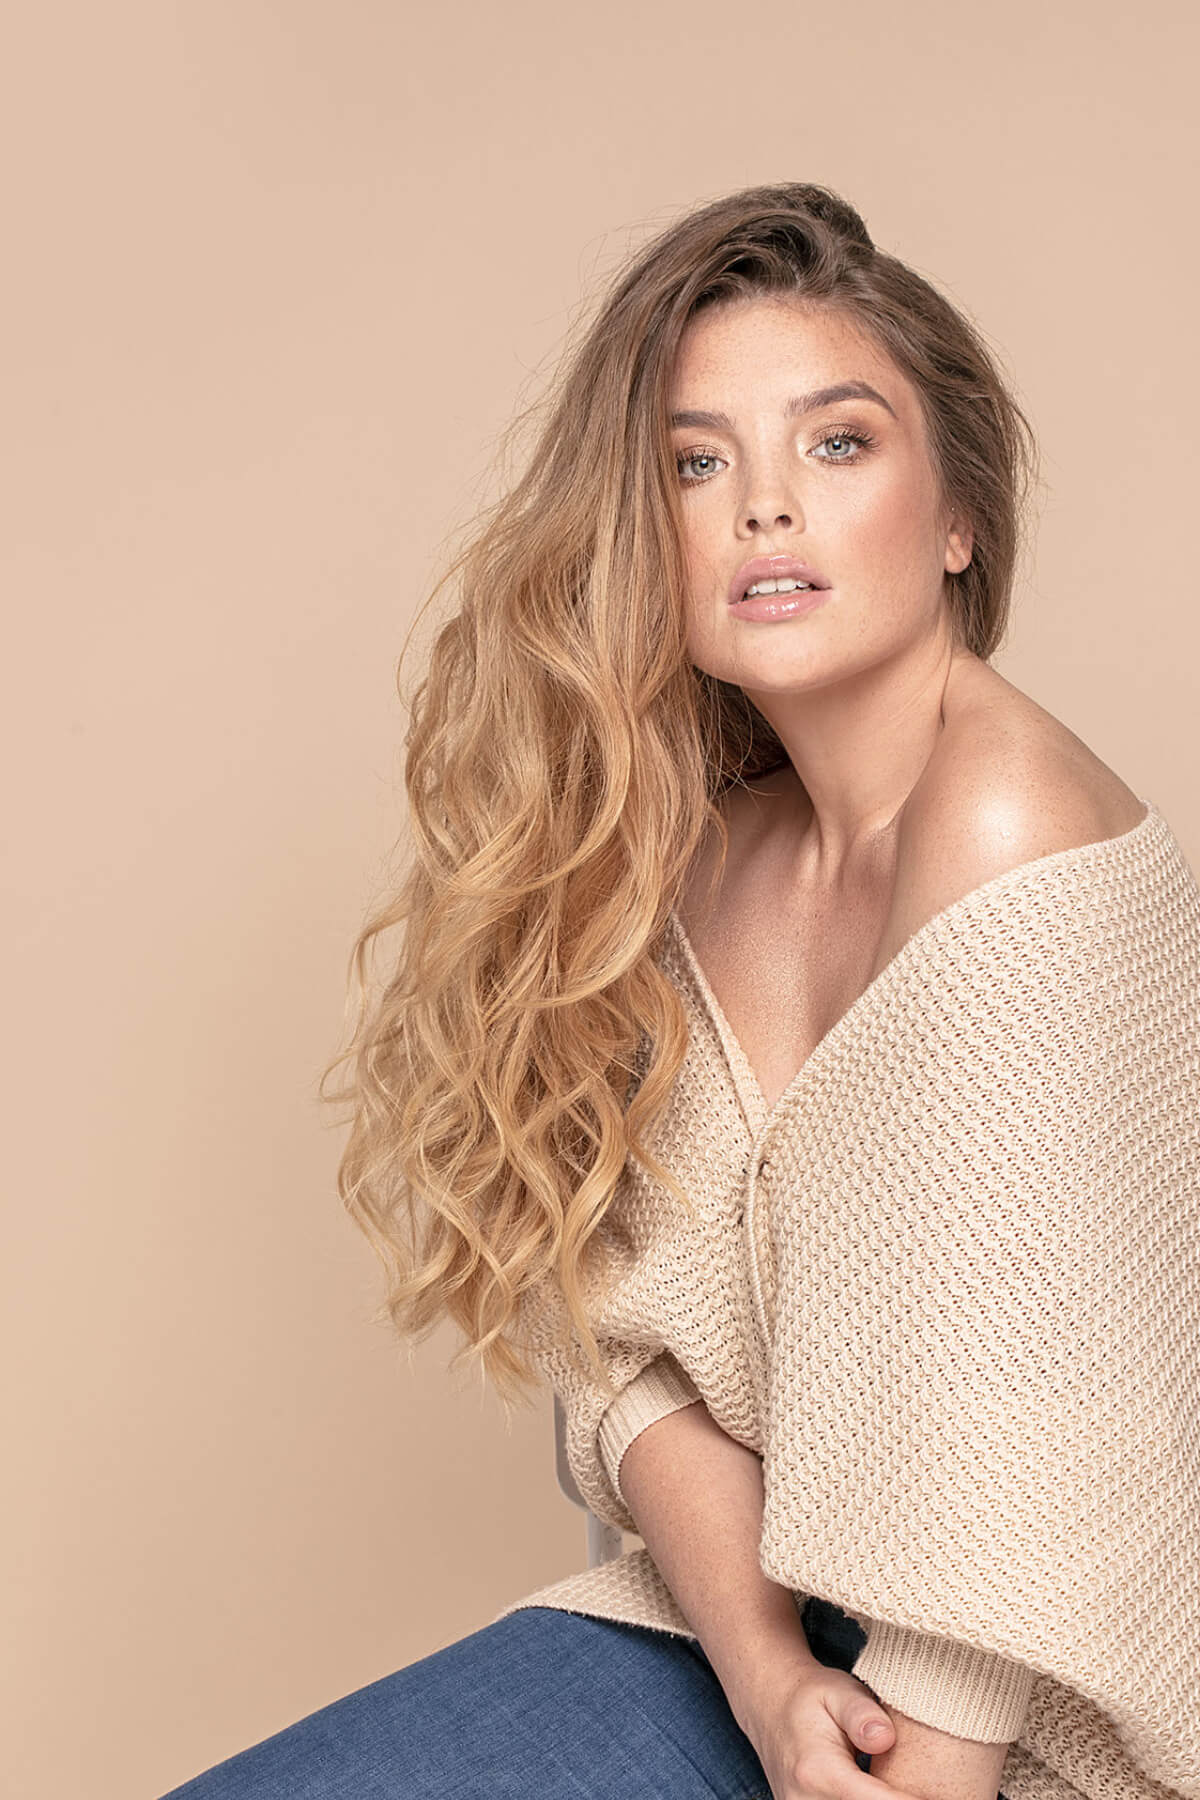 Sunday Salon: Fashion photo of woman with freckles and long hair.